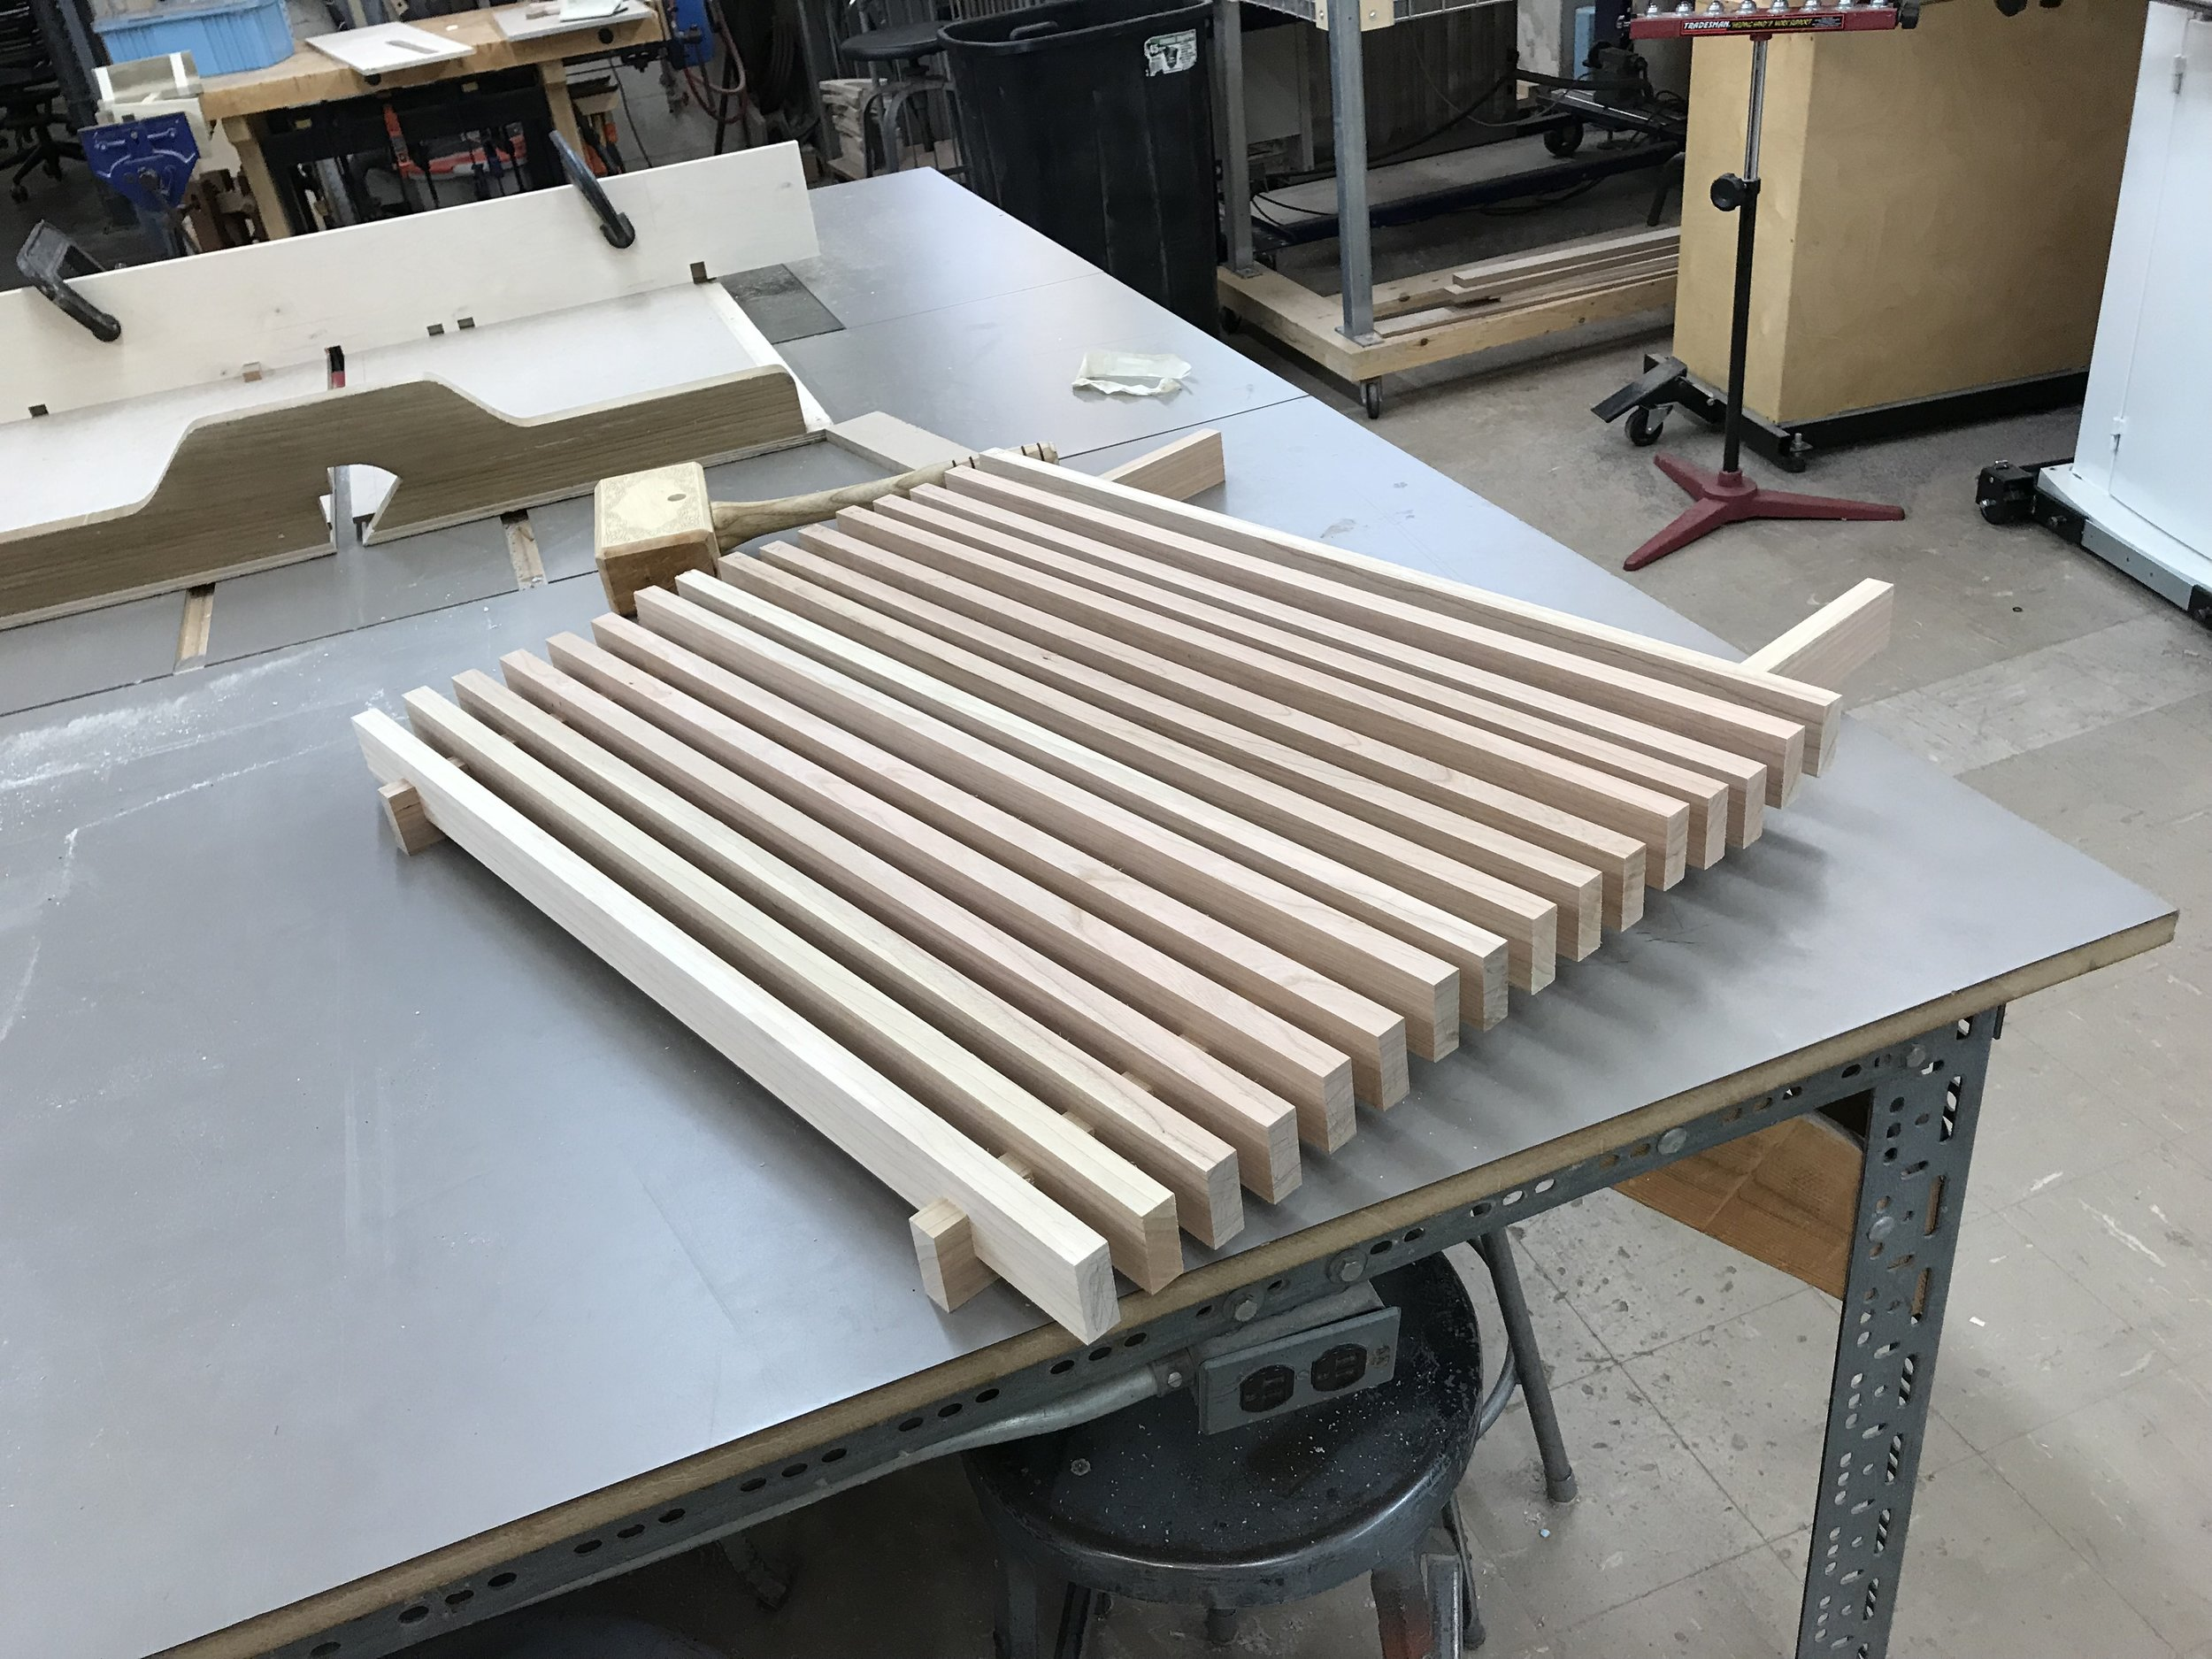 A dry fit slat test